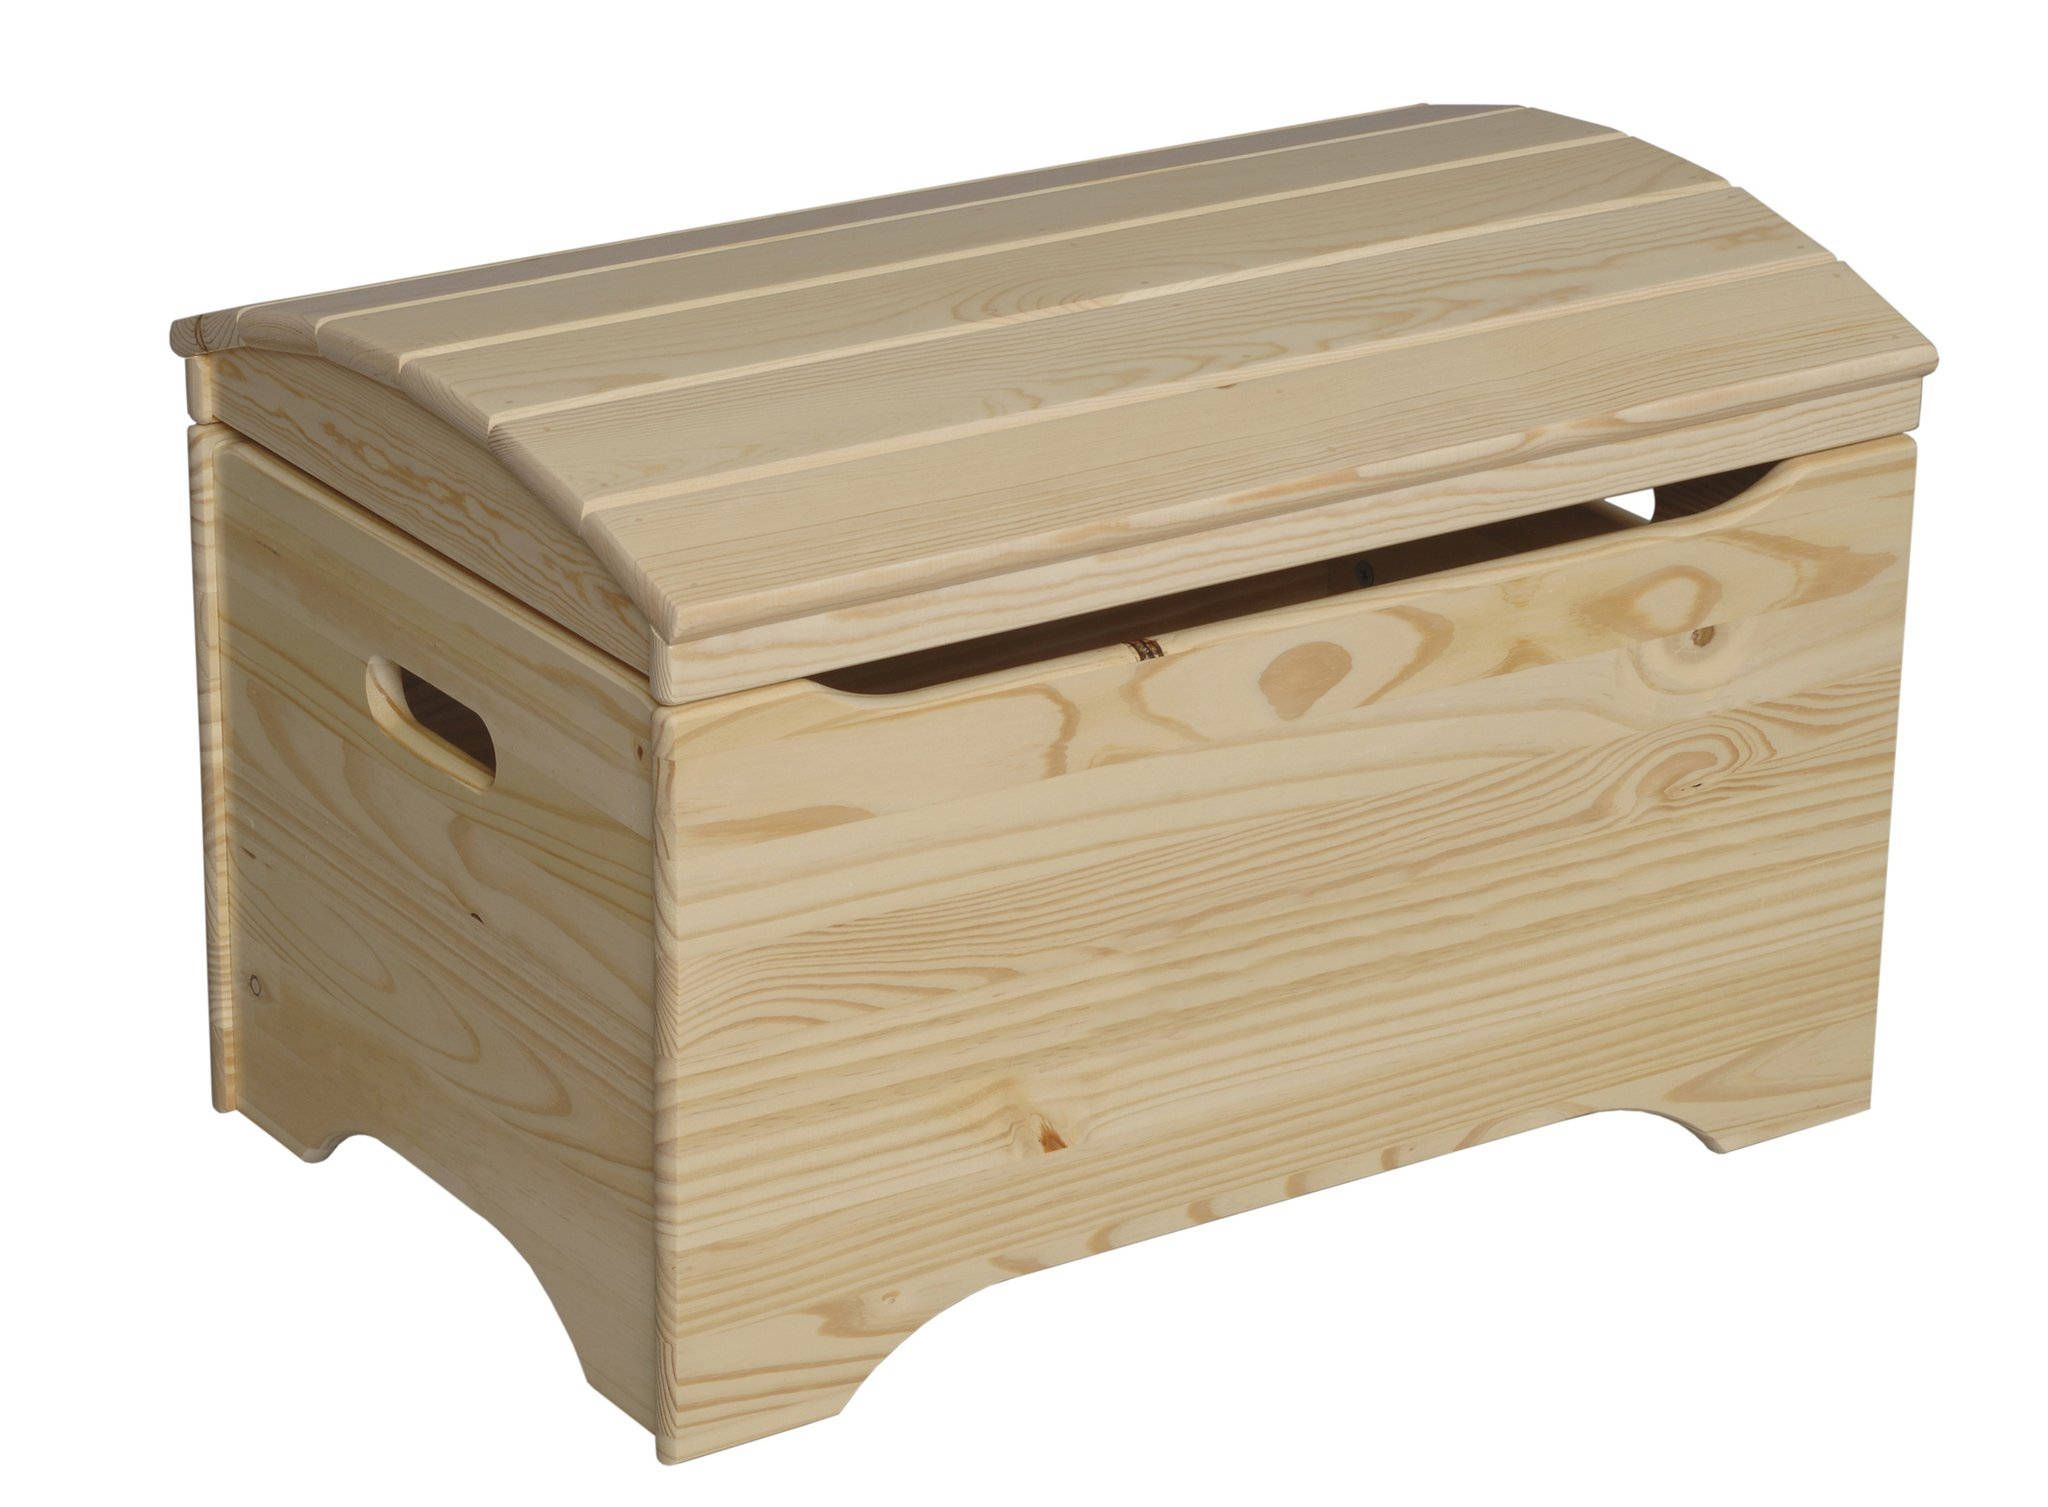 Treasure Chest Toy Box Wooden Toy Chest Unfinished Wood Toy Etsy Wooden Toy Chest Toy Storage Bench Toy Boxes